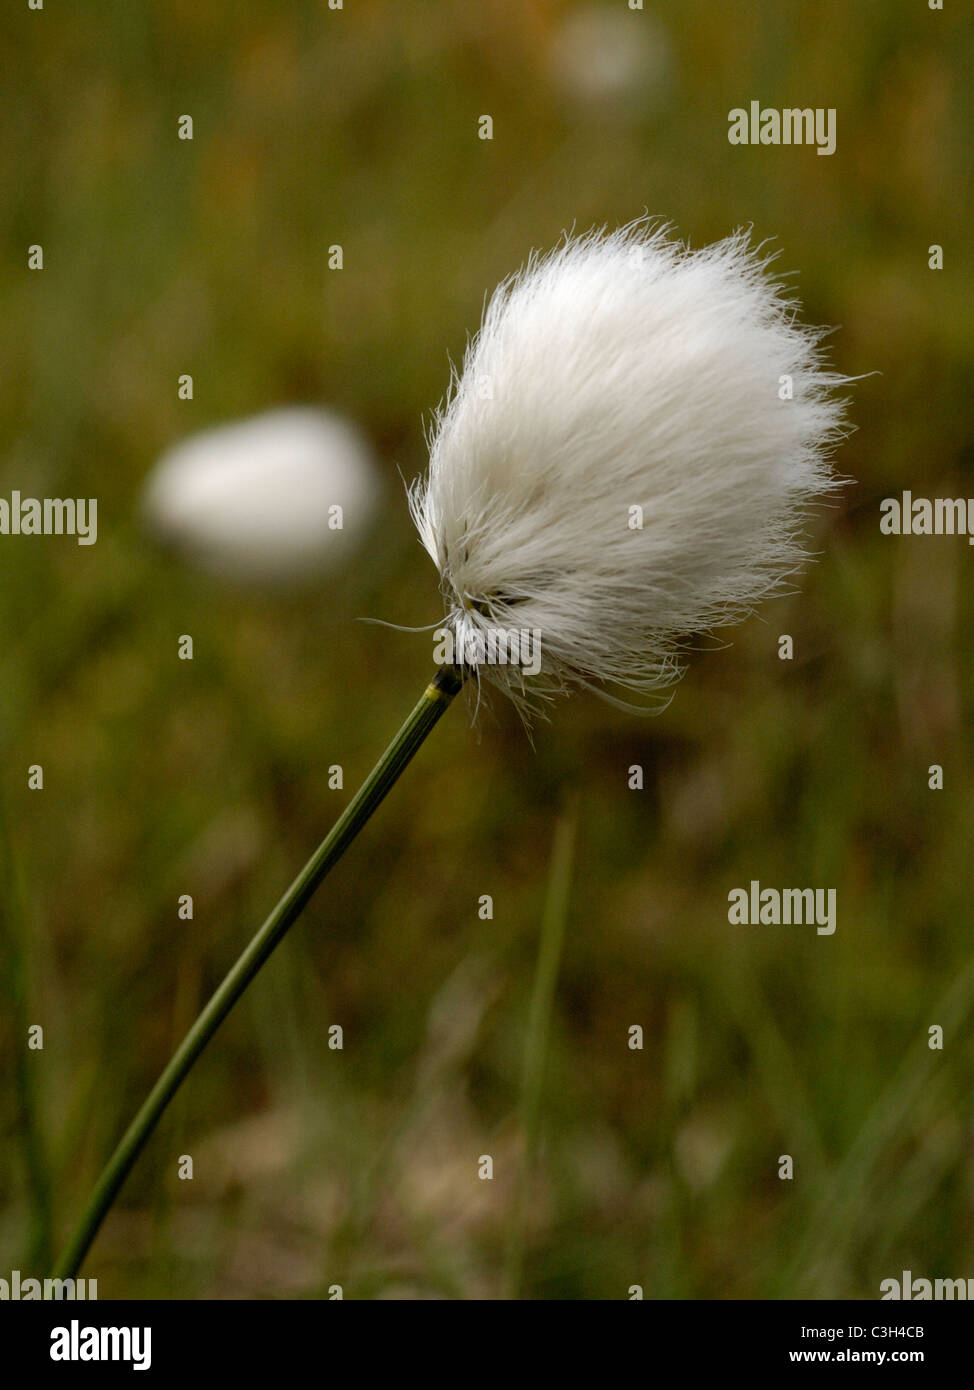 Hare's-tail Cottongrass, eriophorum vaginatum - Stock Image